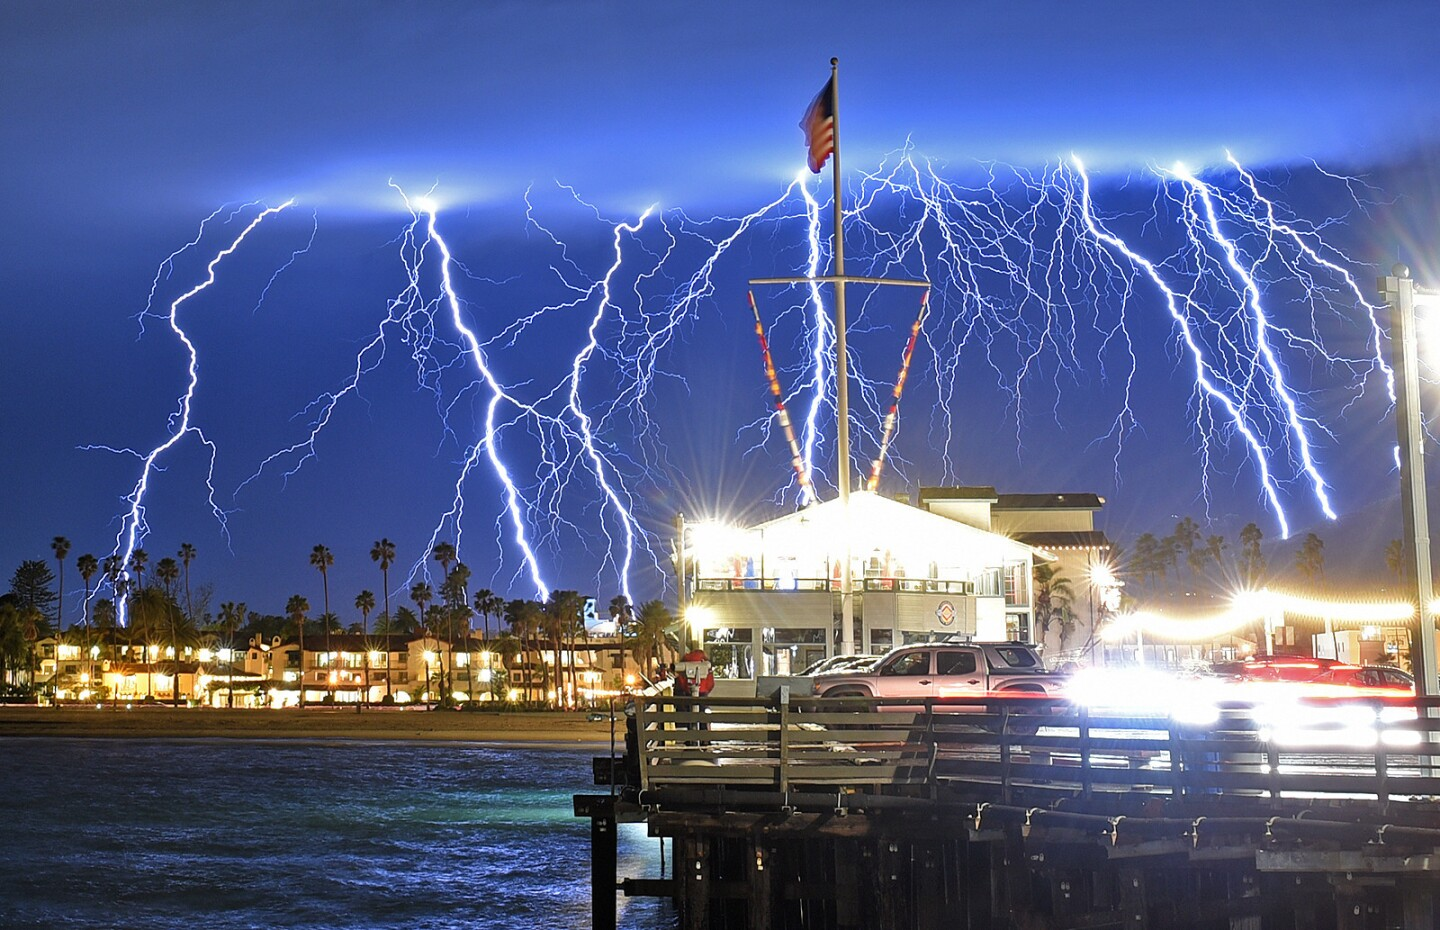 A time exposure captures a series of lightning strikes as seen from Stearns Wharf in Santa Barbara. The photographer used a cable release and a time exposure of between 15 and 75 seconds at an f/11 aperture.